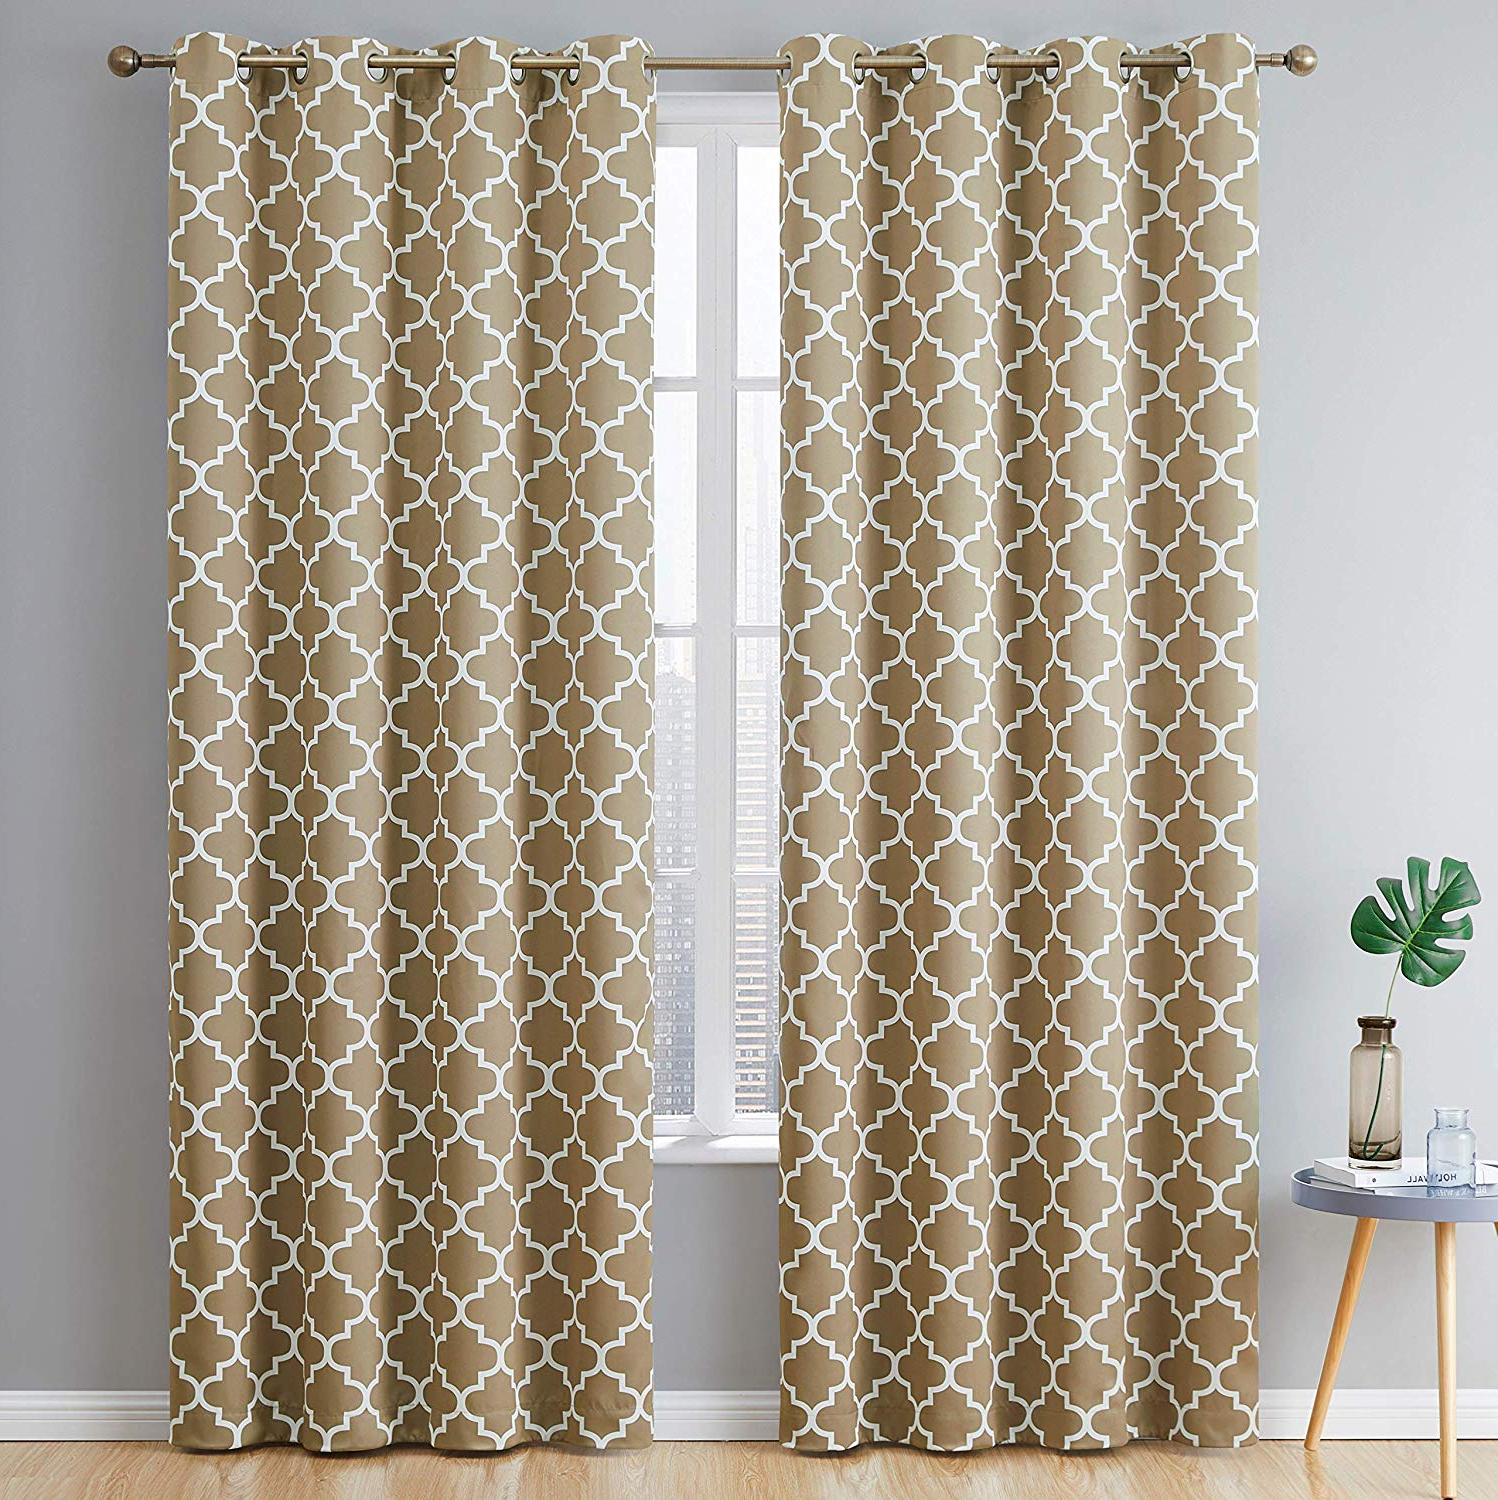 Most Up To Date Thermal Insulated Blackout Grommet Top Curtain Panel Pairs Intended For Hlc Lattice Print Thermal Insulated Blackout Window Curtain Panels, Pair, Chrome Grommet Top, Taupe (View 11 of 20)